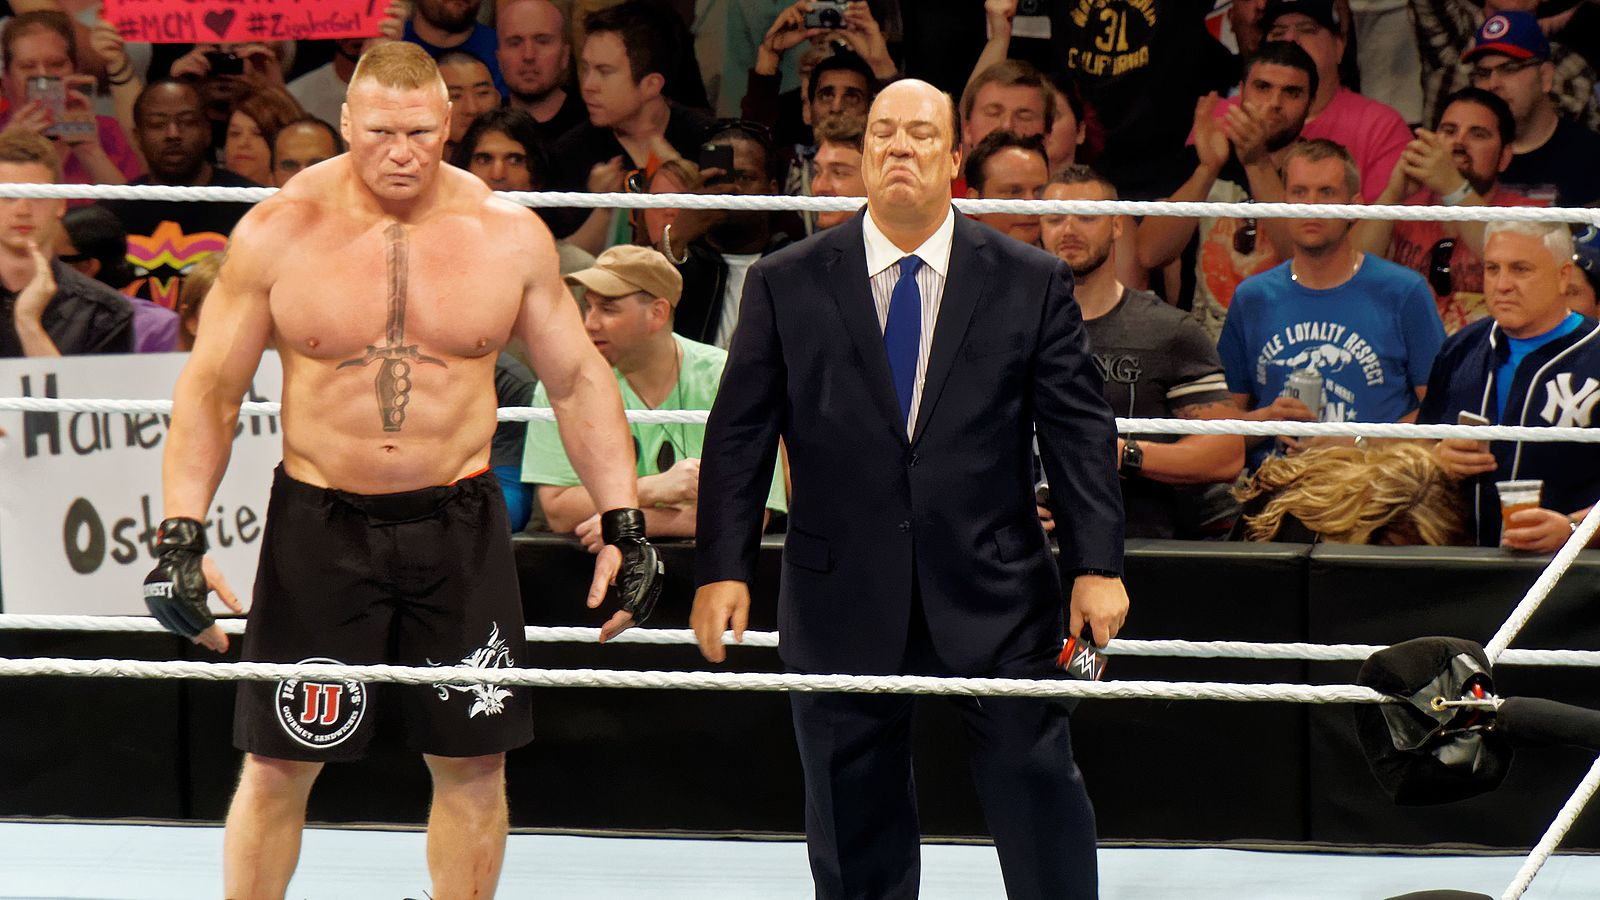 Paul Heyman & Brock Lesnar